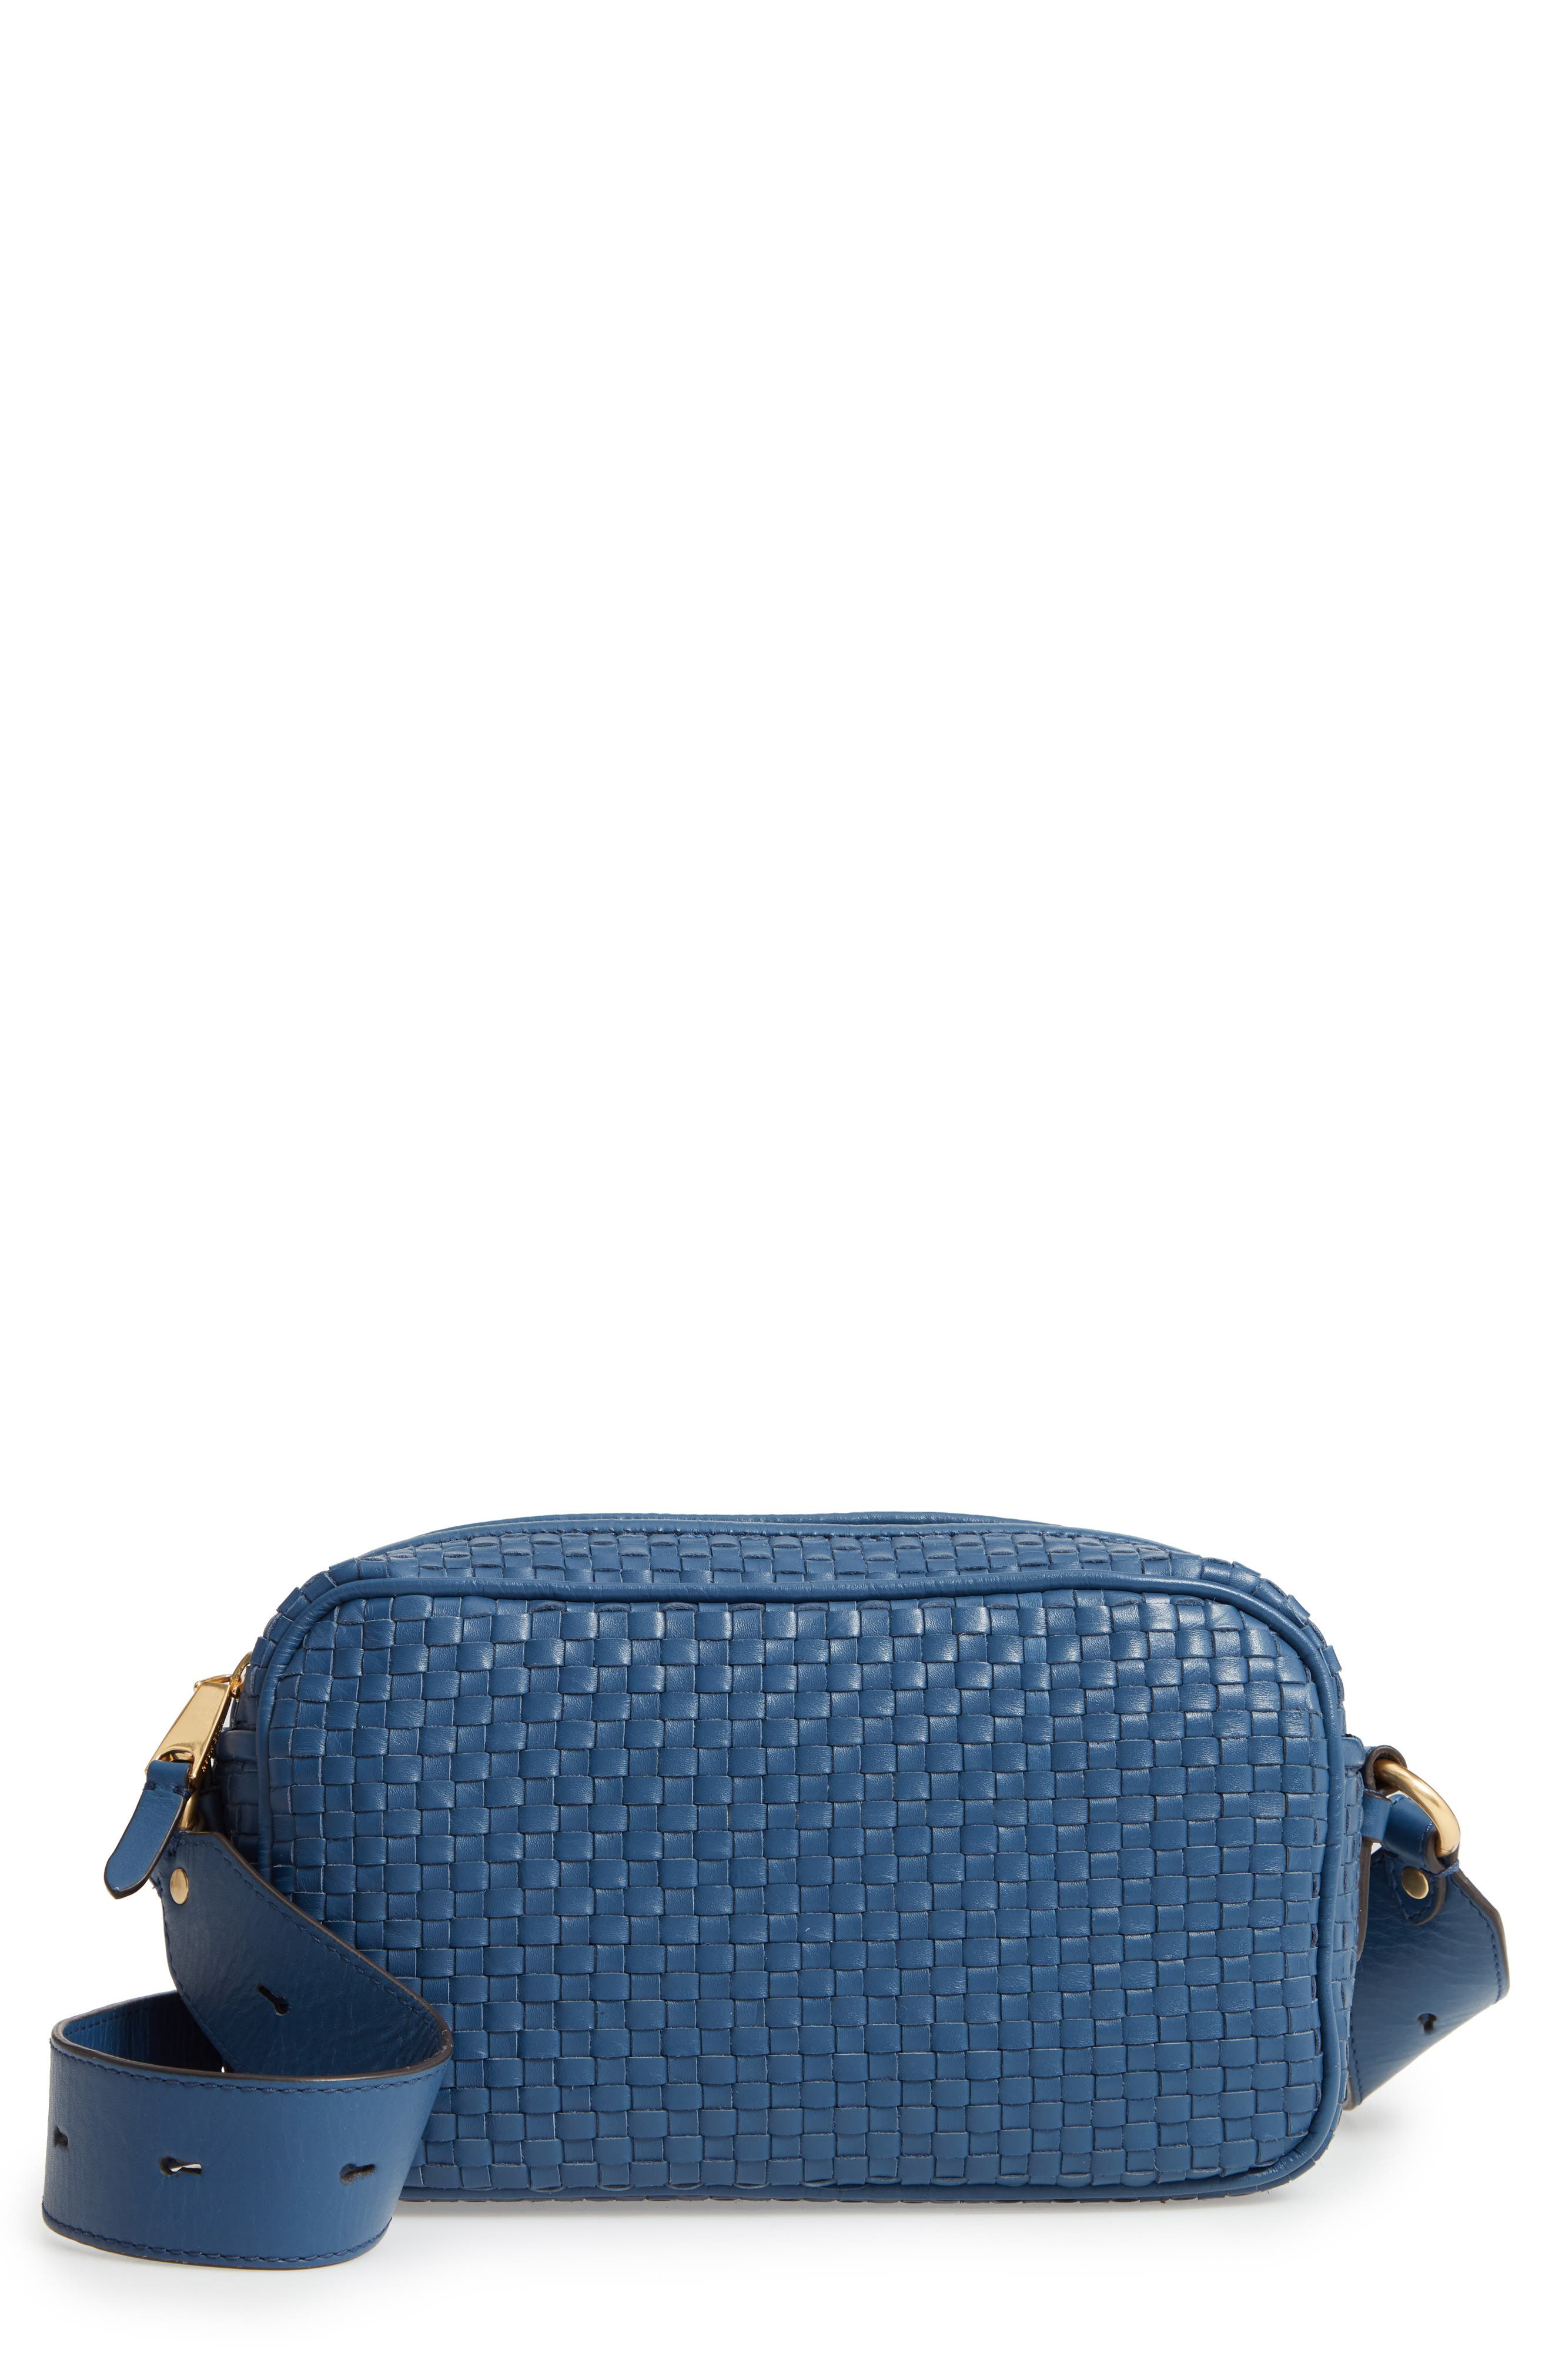 Zoe RFID Woven Leather Camera Bag,                             Main thumbnail 1, color,                             Navy Peony